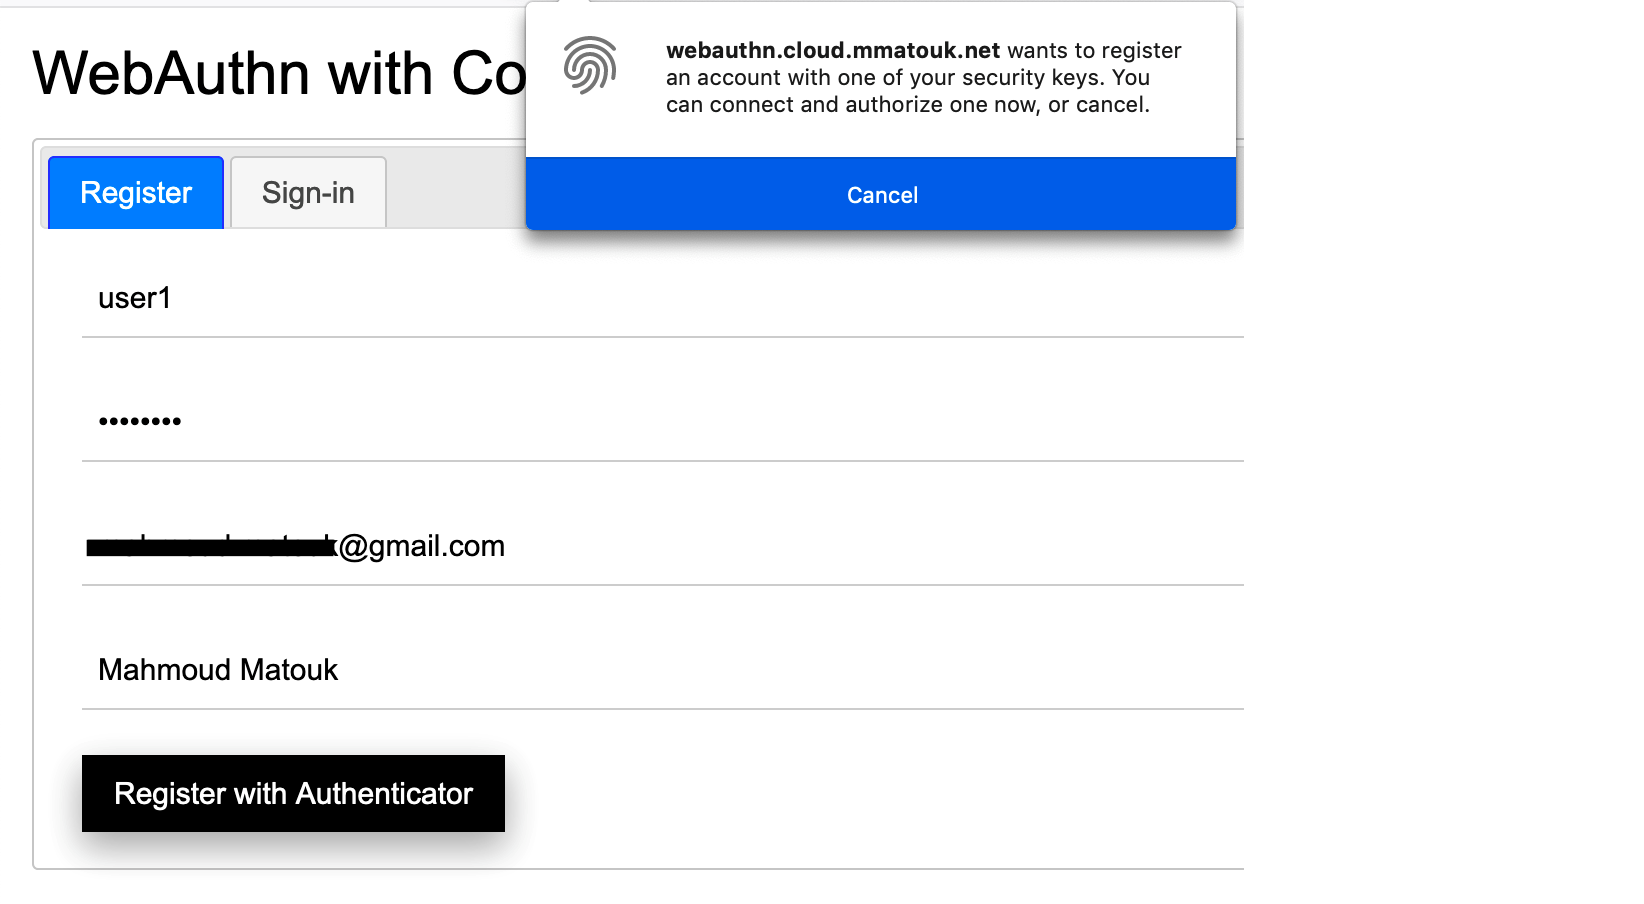 Figure 2: User registration and browser alert to use an authenticator in Firefox